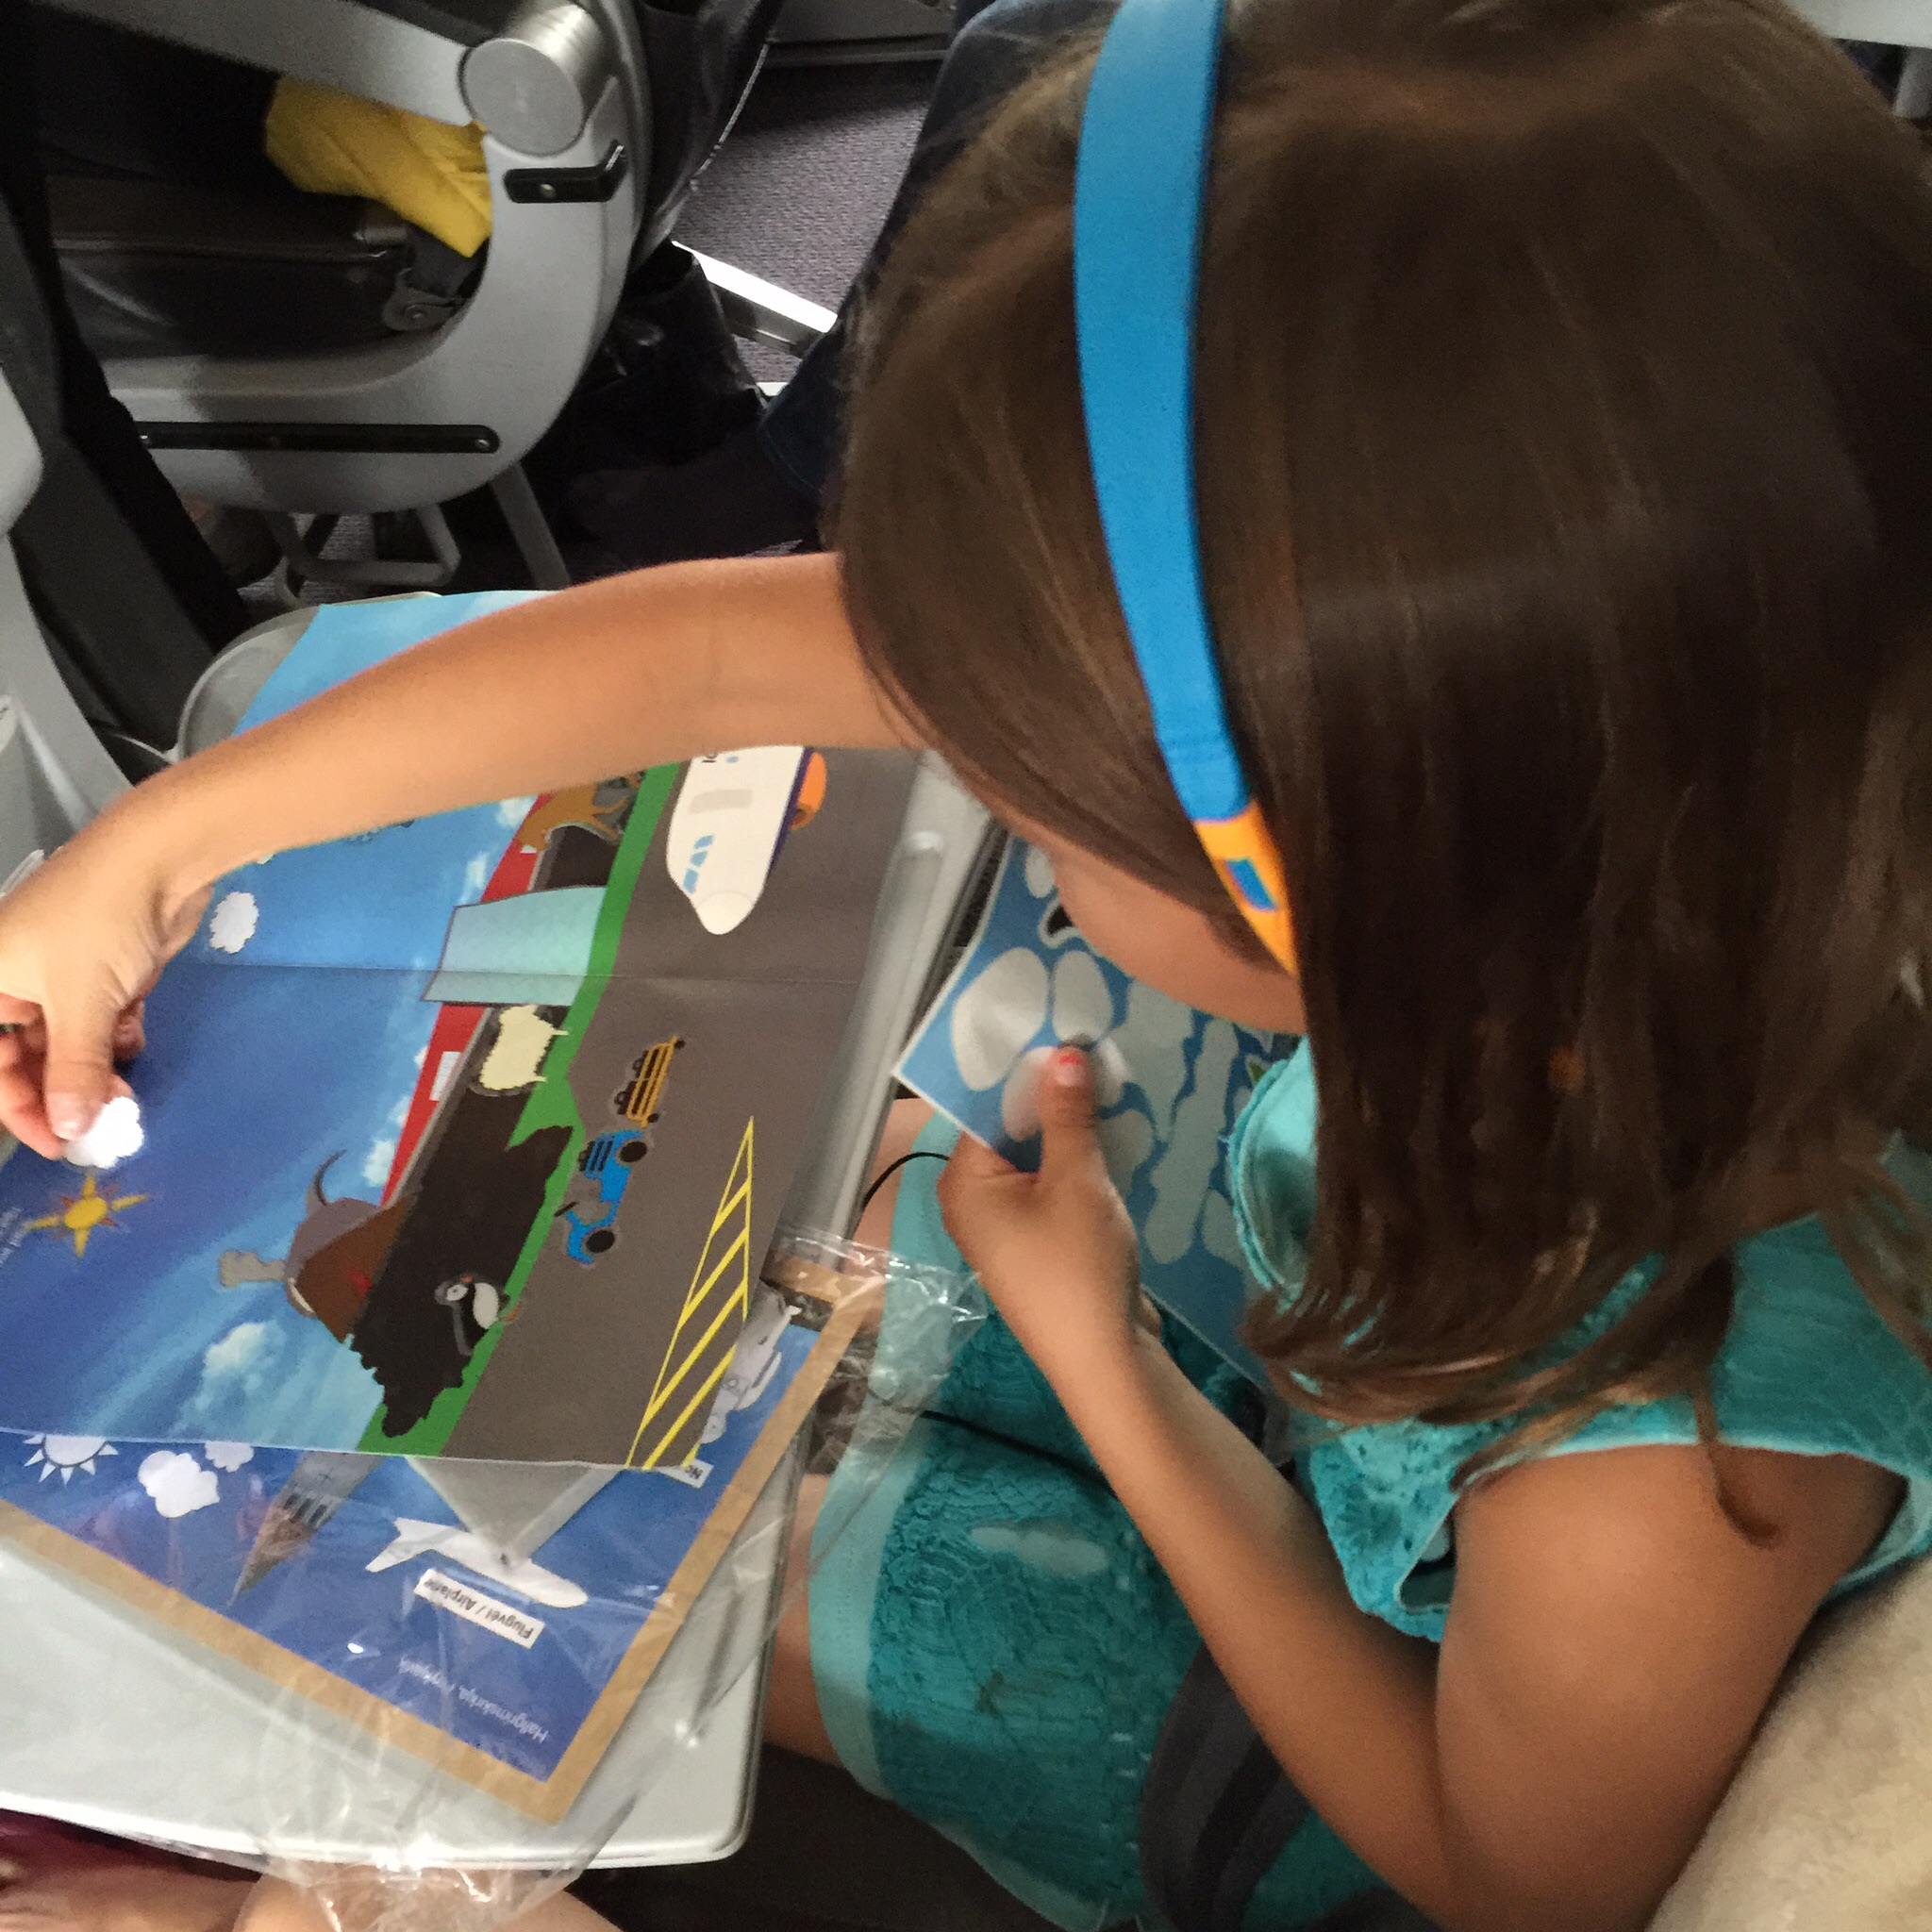 My daughter placing stickers from Iceland Air's activity pack